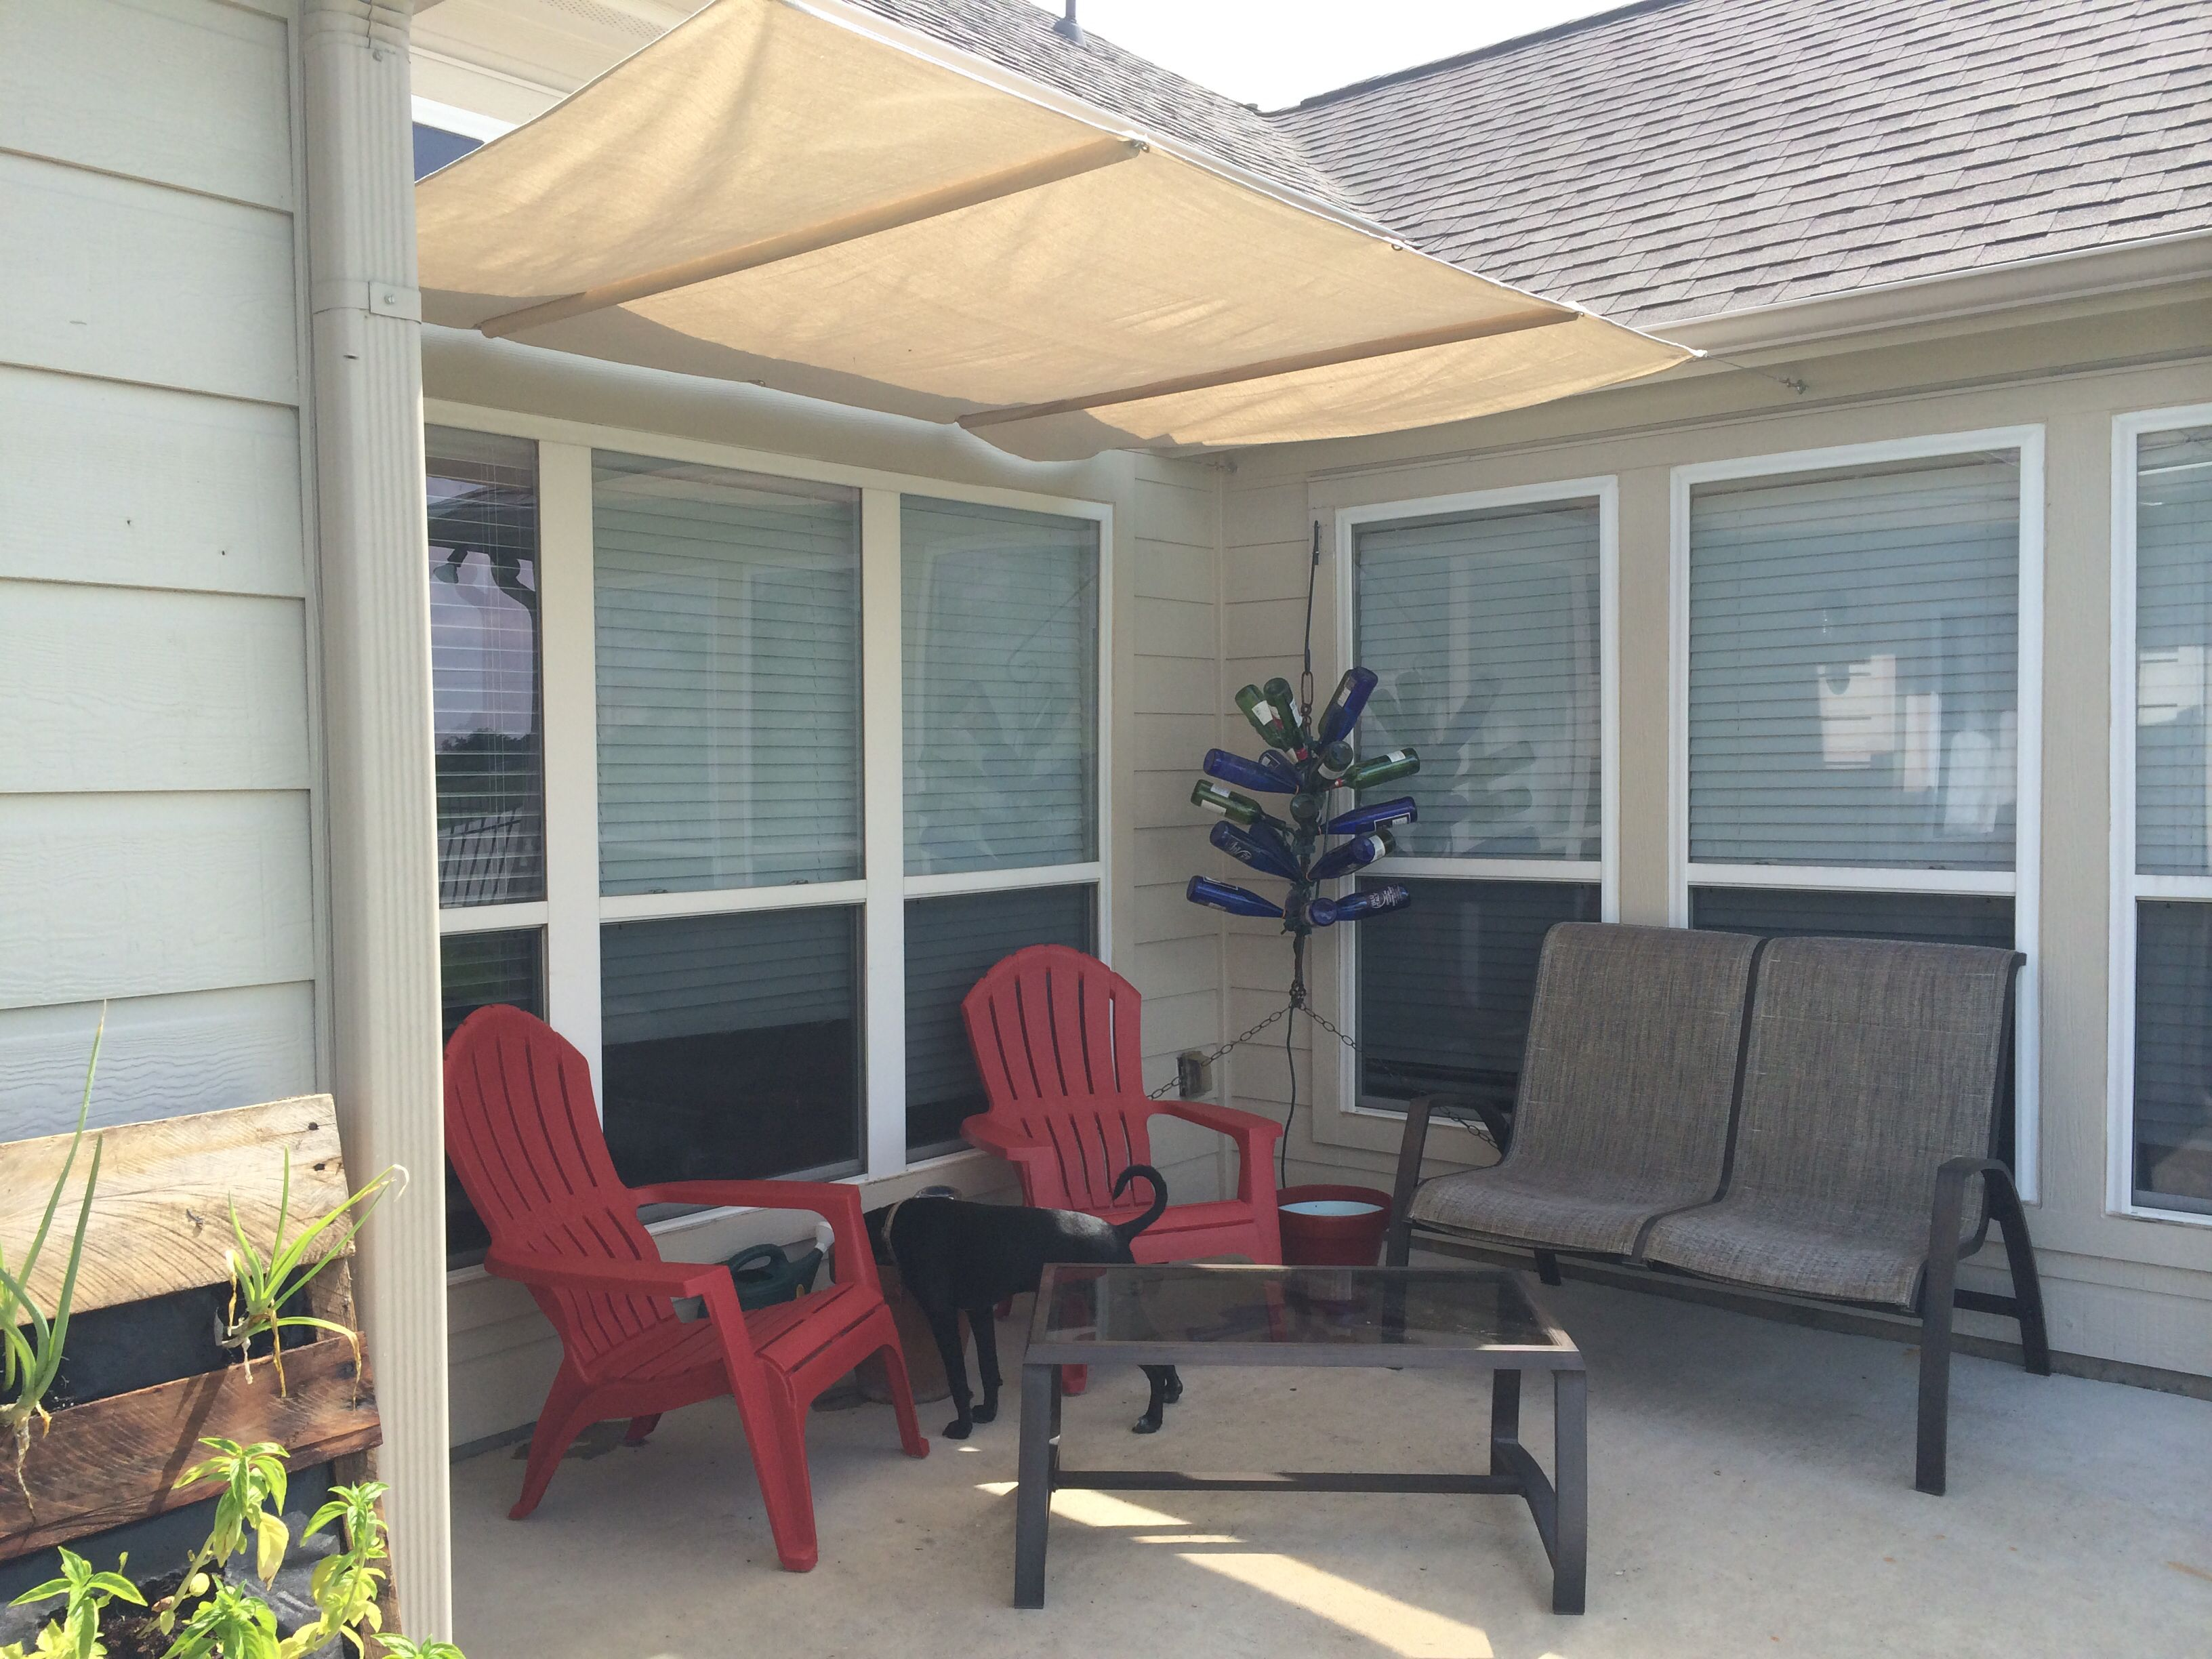 DIY Canvas Drop Cloth Patio Cover